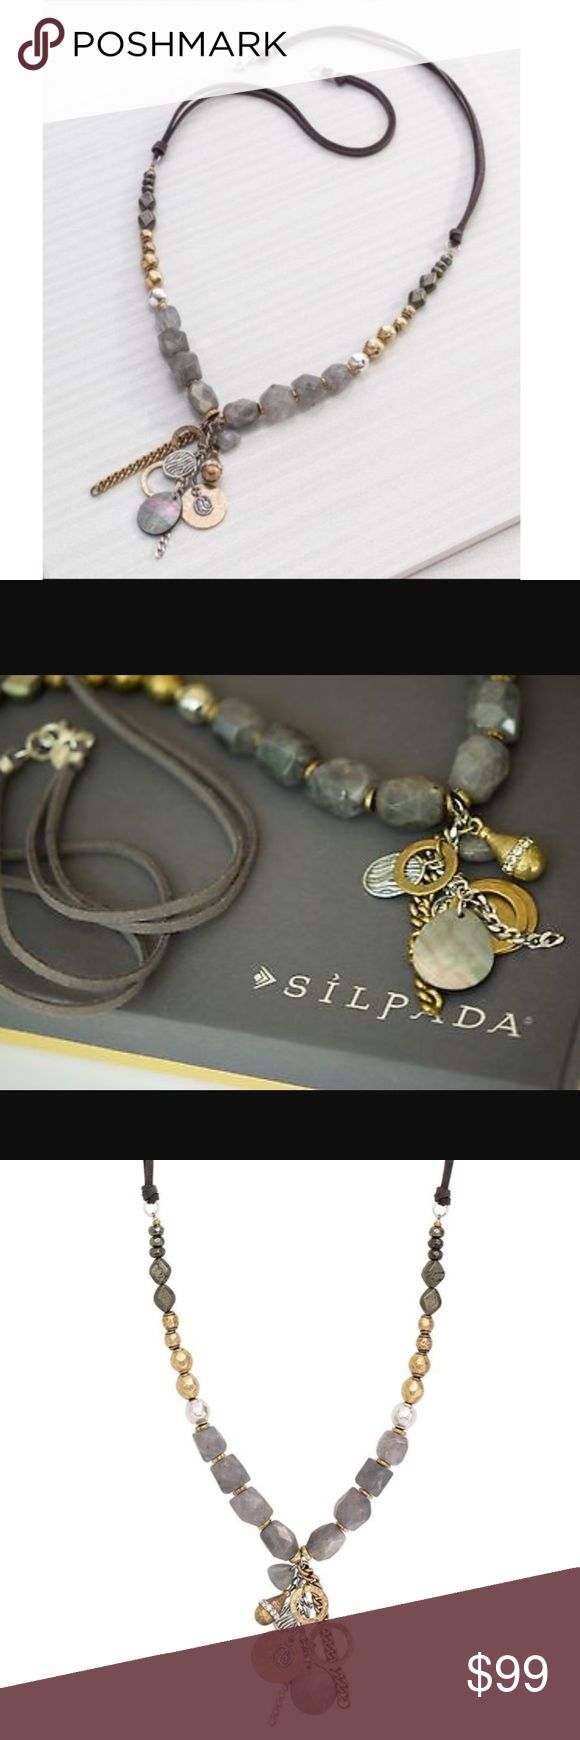 """Silpada Rare """"Ethereal Necklace"""" Silpada """"Ethereal Necklace"""" Brass, Labradorite Sterling Silver. 30"""" Materilal - Agate, Brass, Cord, Labradorite, Pyrite, Shell, Swarovski Crystals ❤️ Silpada Jewelry Necklaces"""